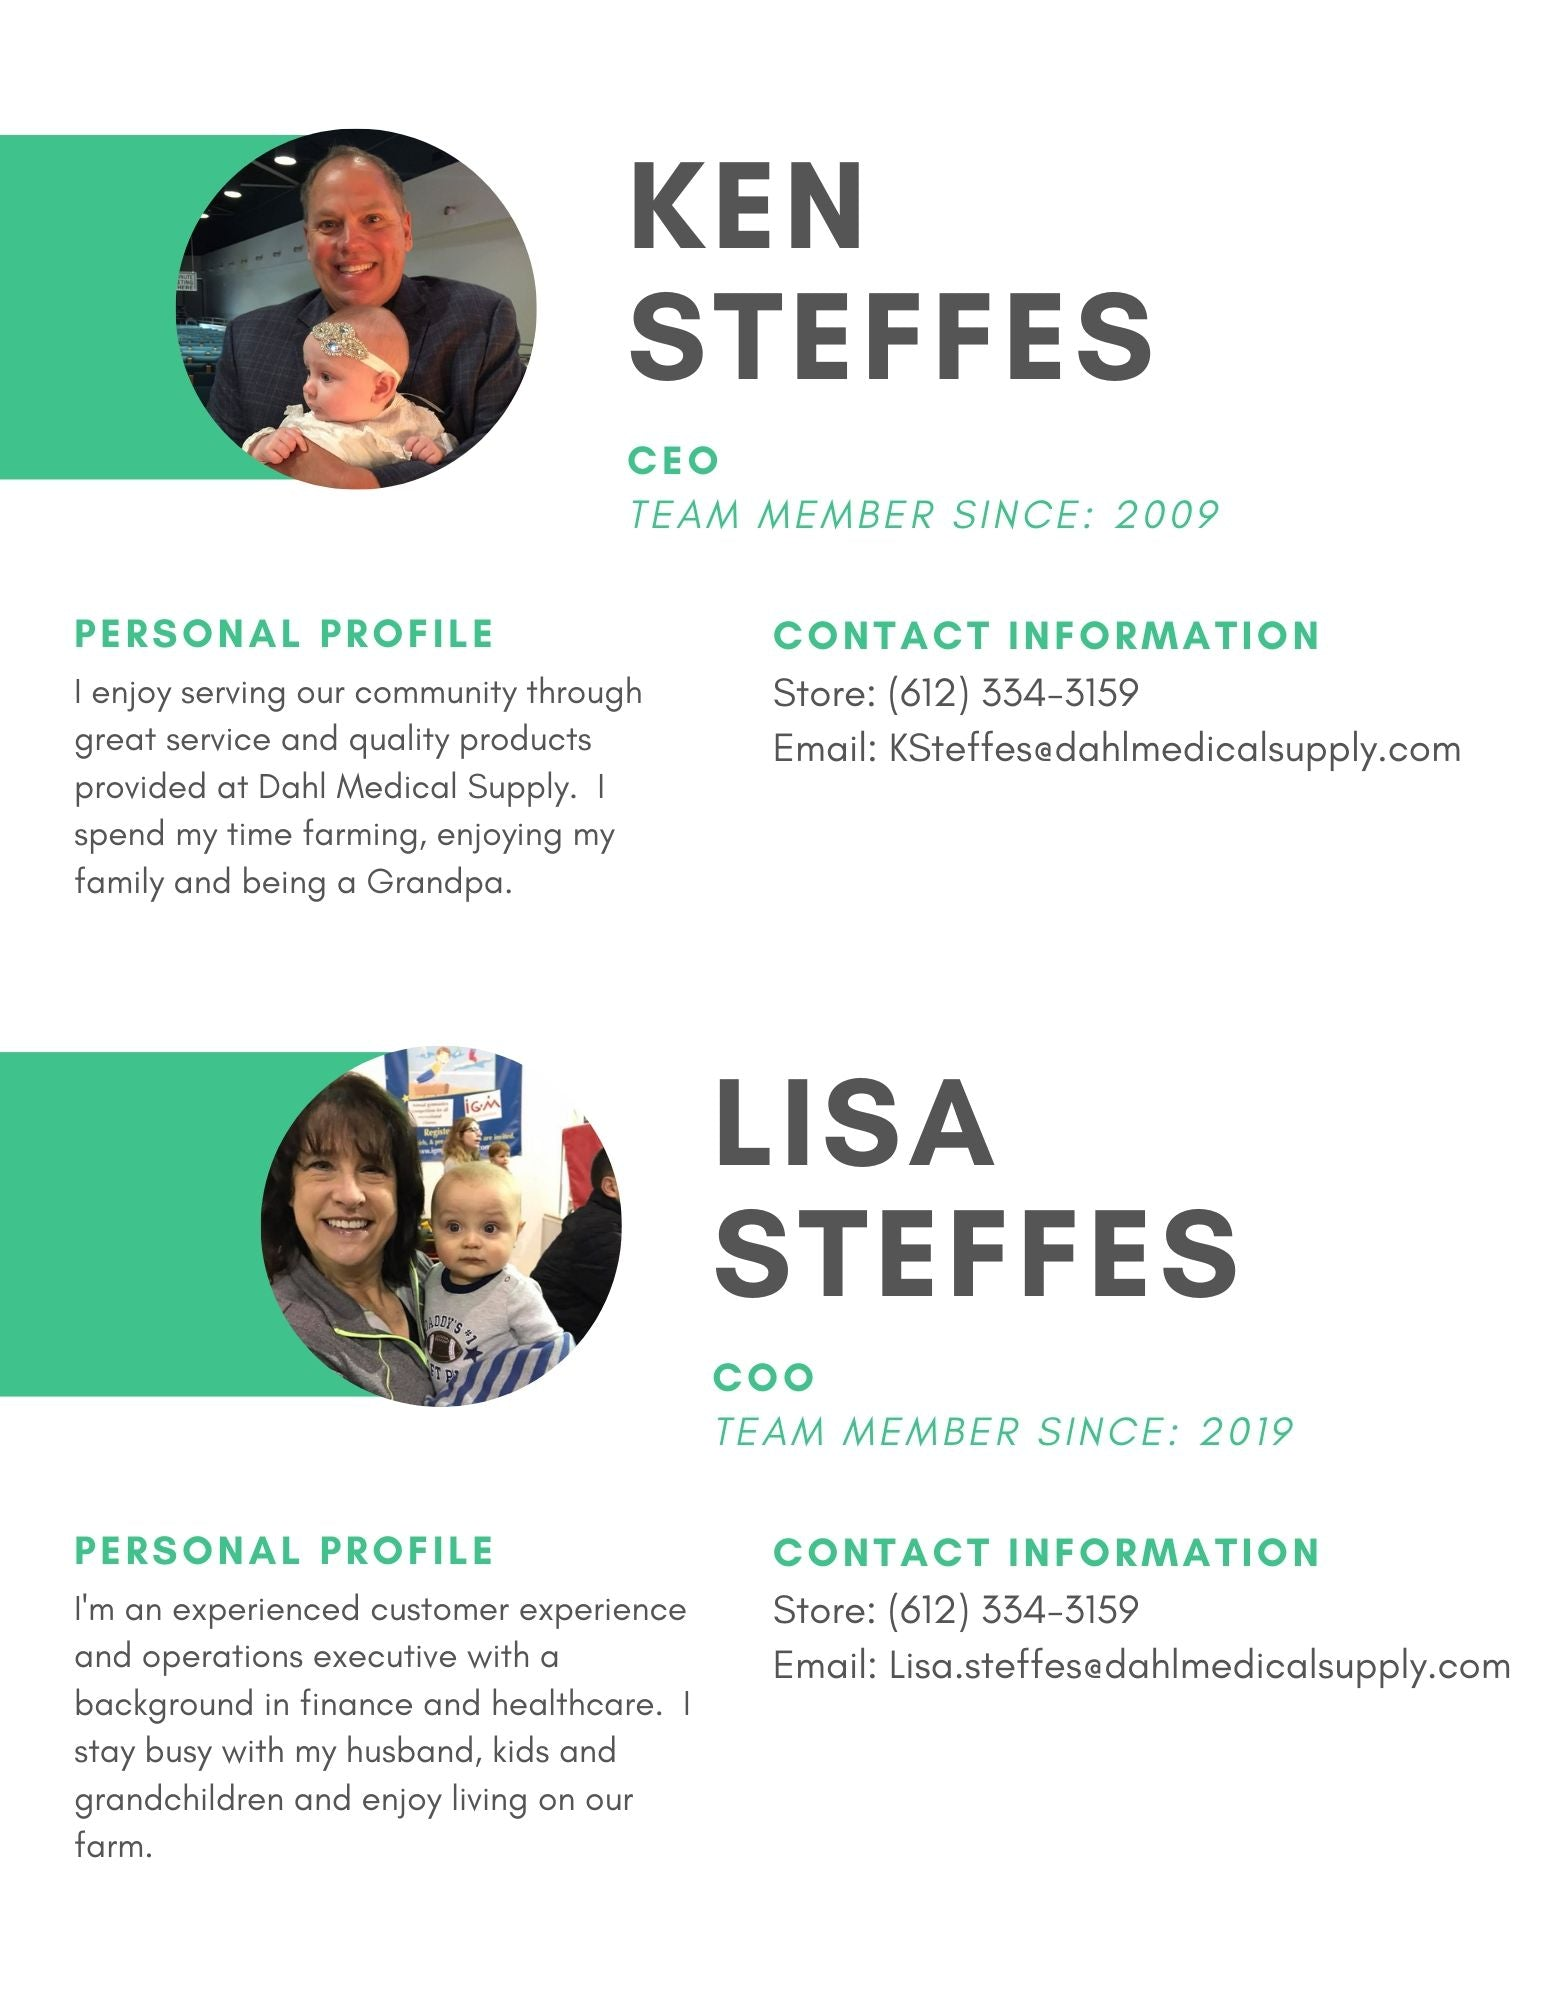 Dahl Medical Supply Team Members: Ken Steffes, CEO and Lisa Steffes, COO